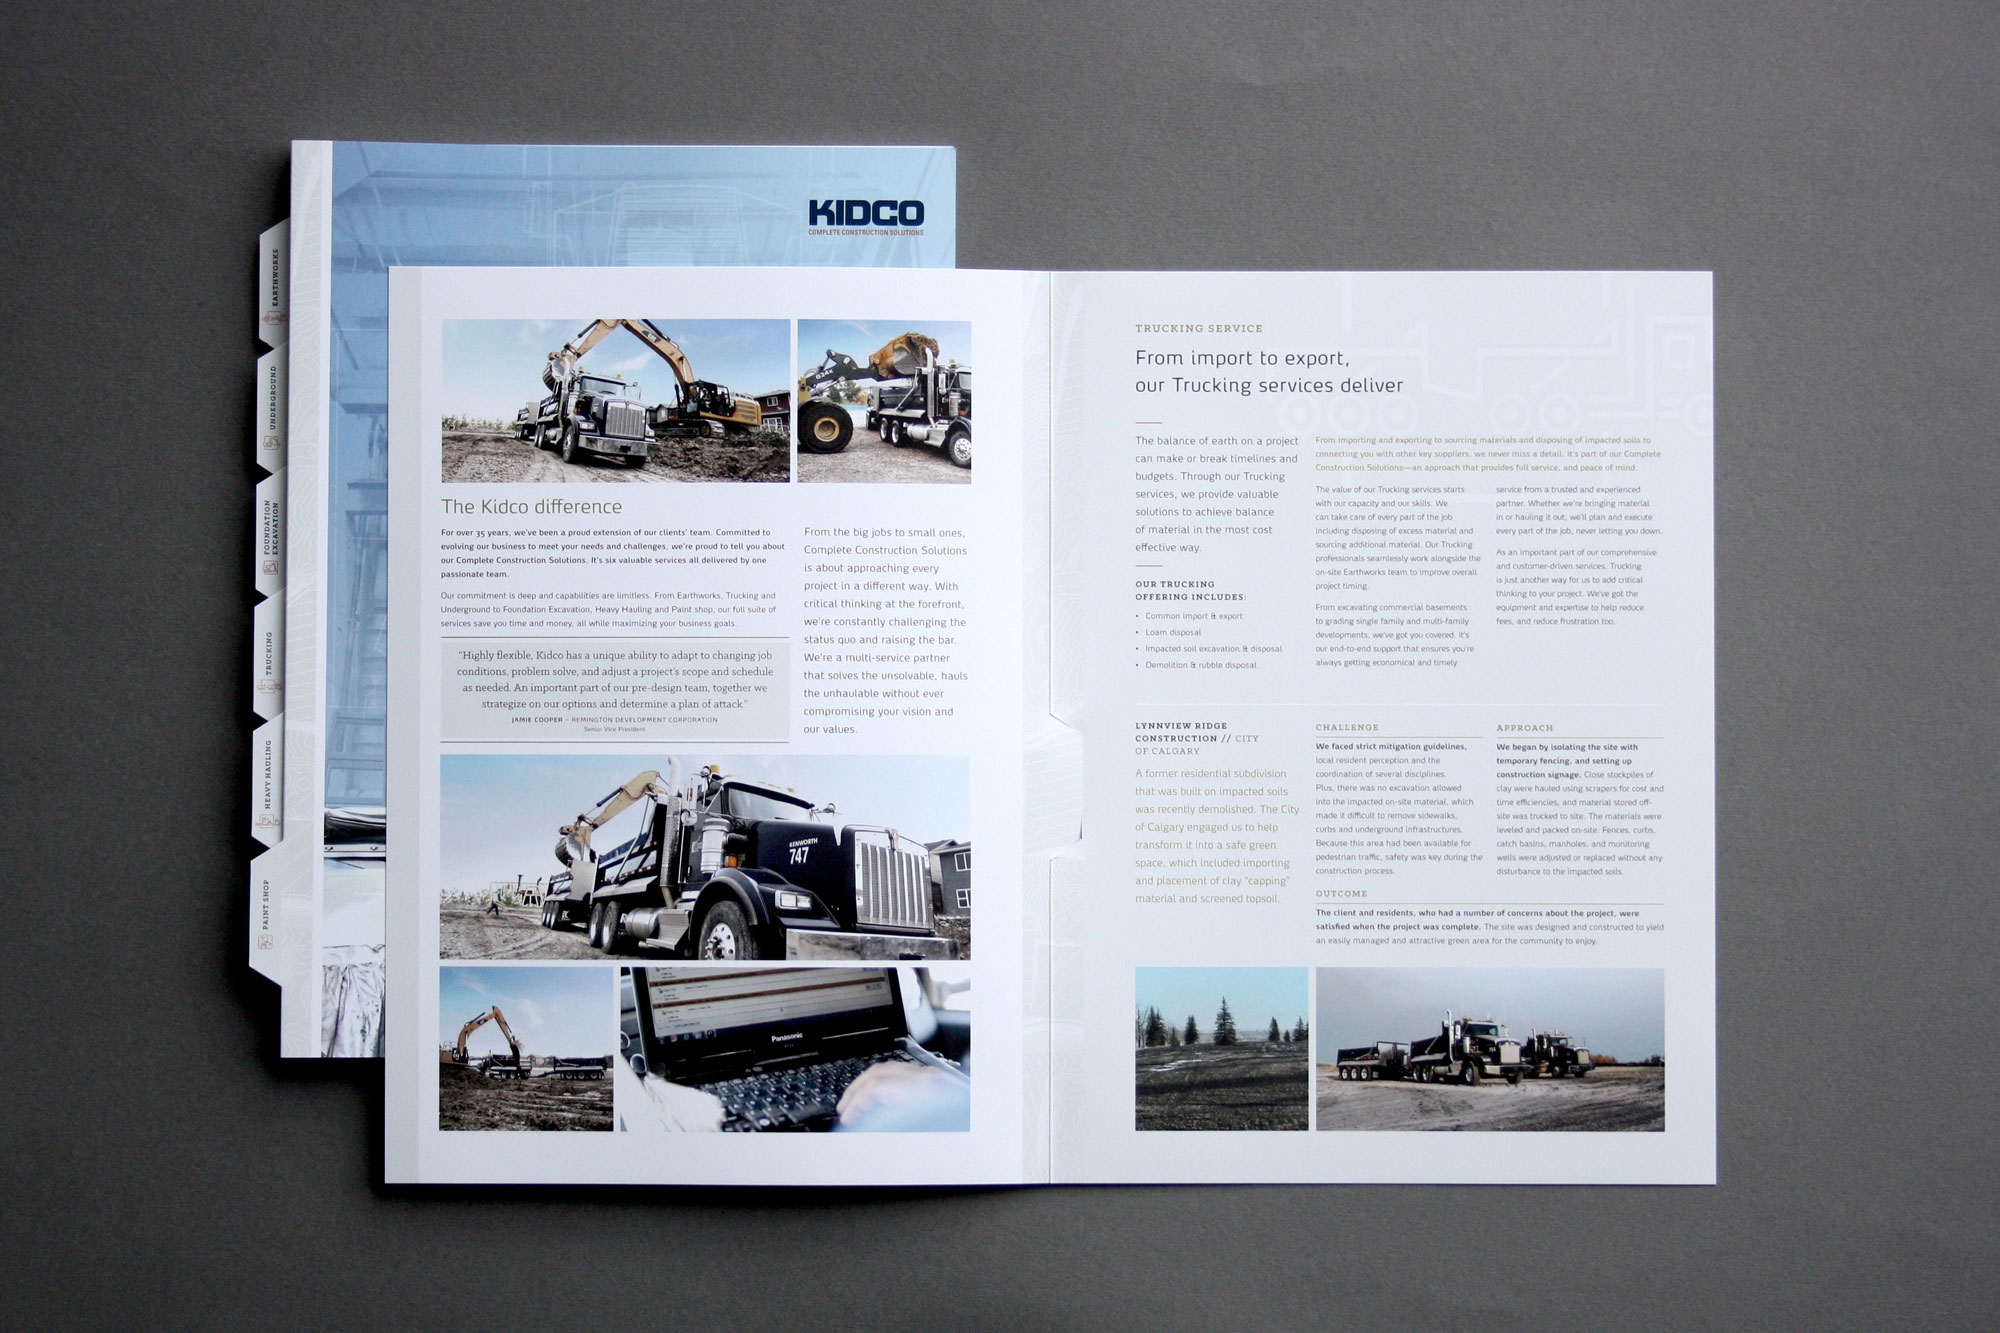 Custom brochure design for Kidco Construction in Calgary with services lines like trucking designed by Studio Forum